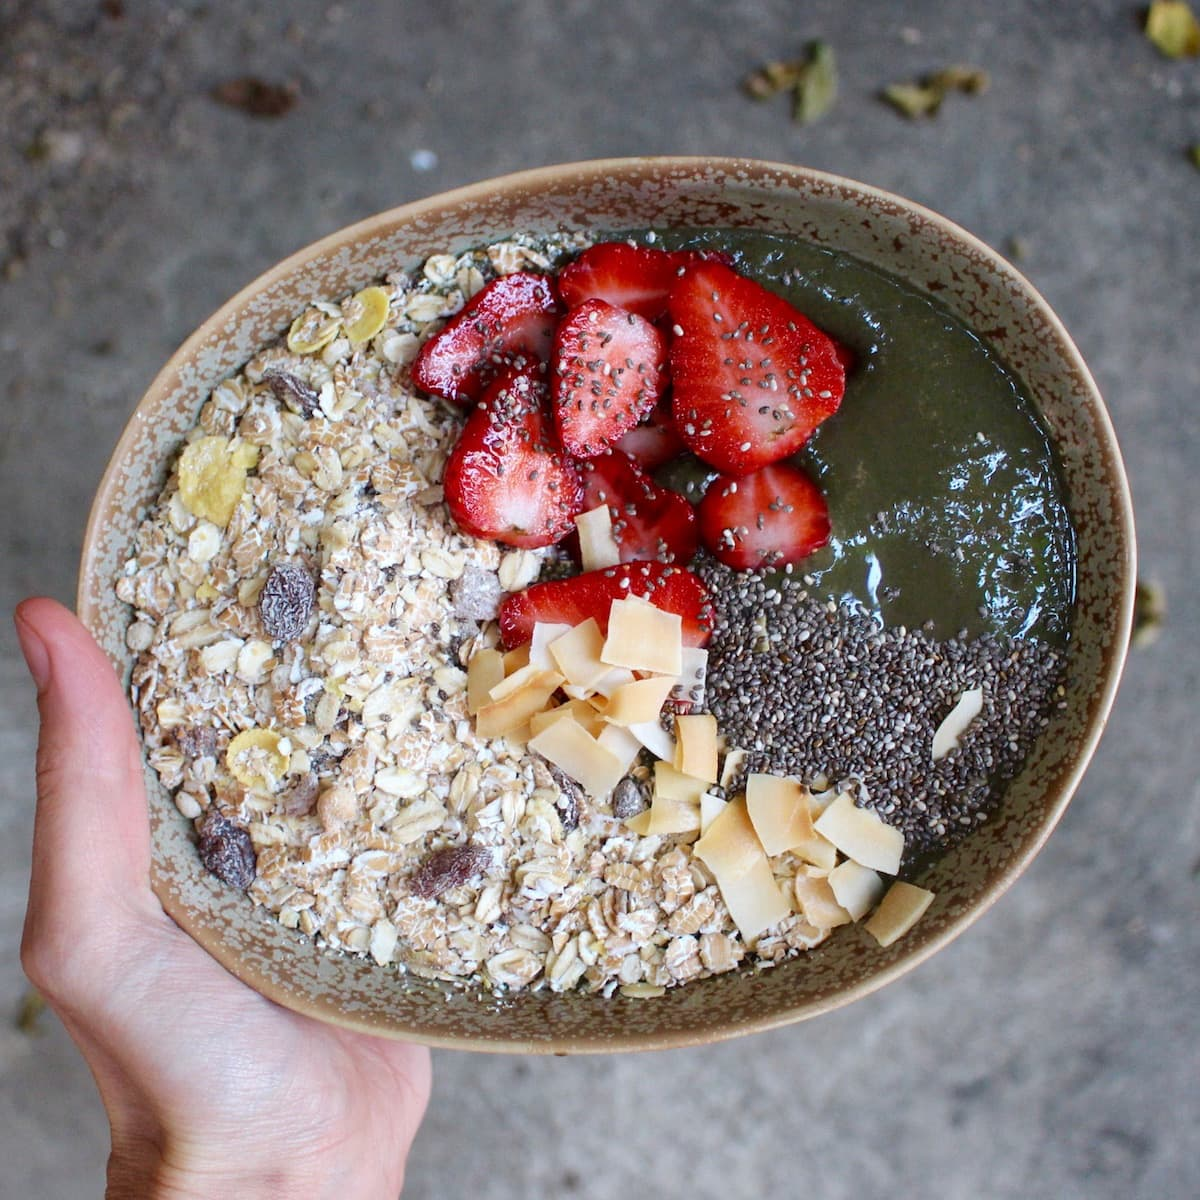 chocolate green smoothie bowl topped with muesli and fruit